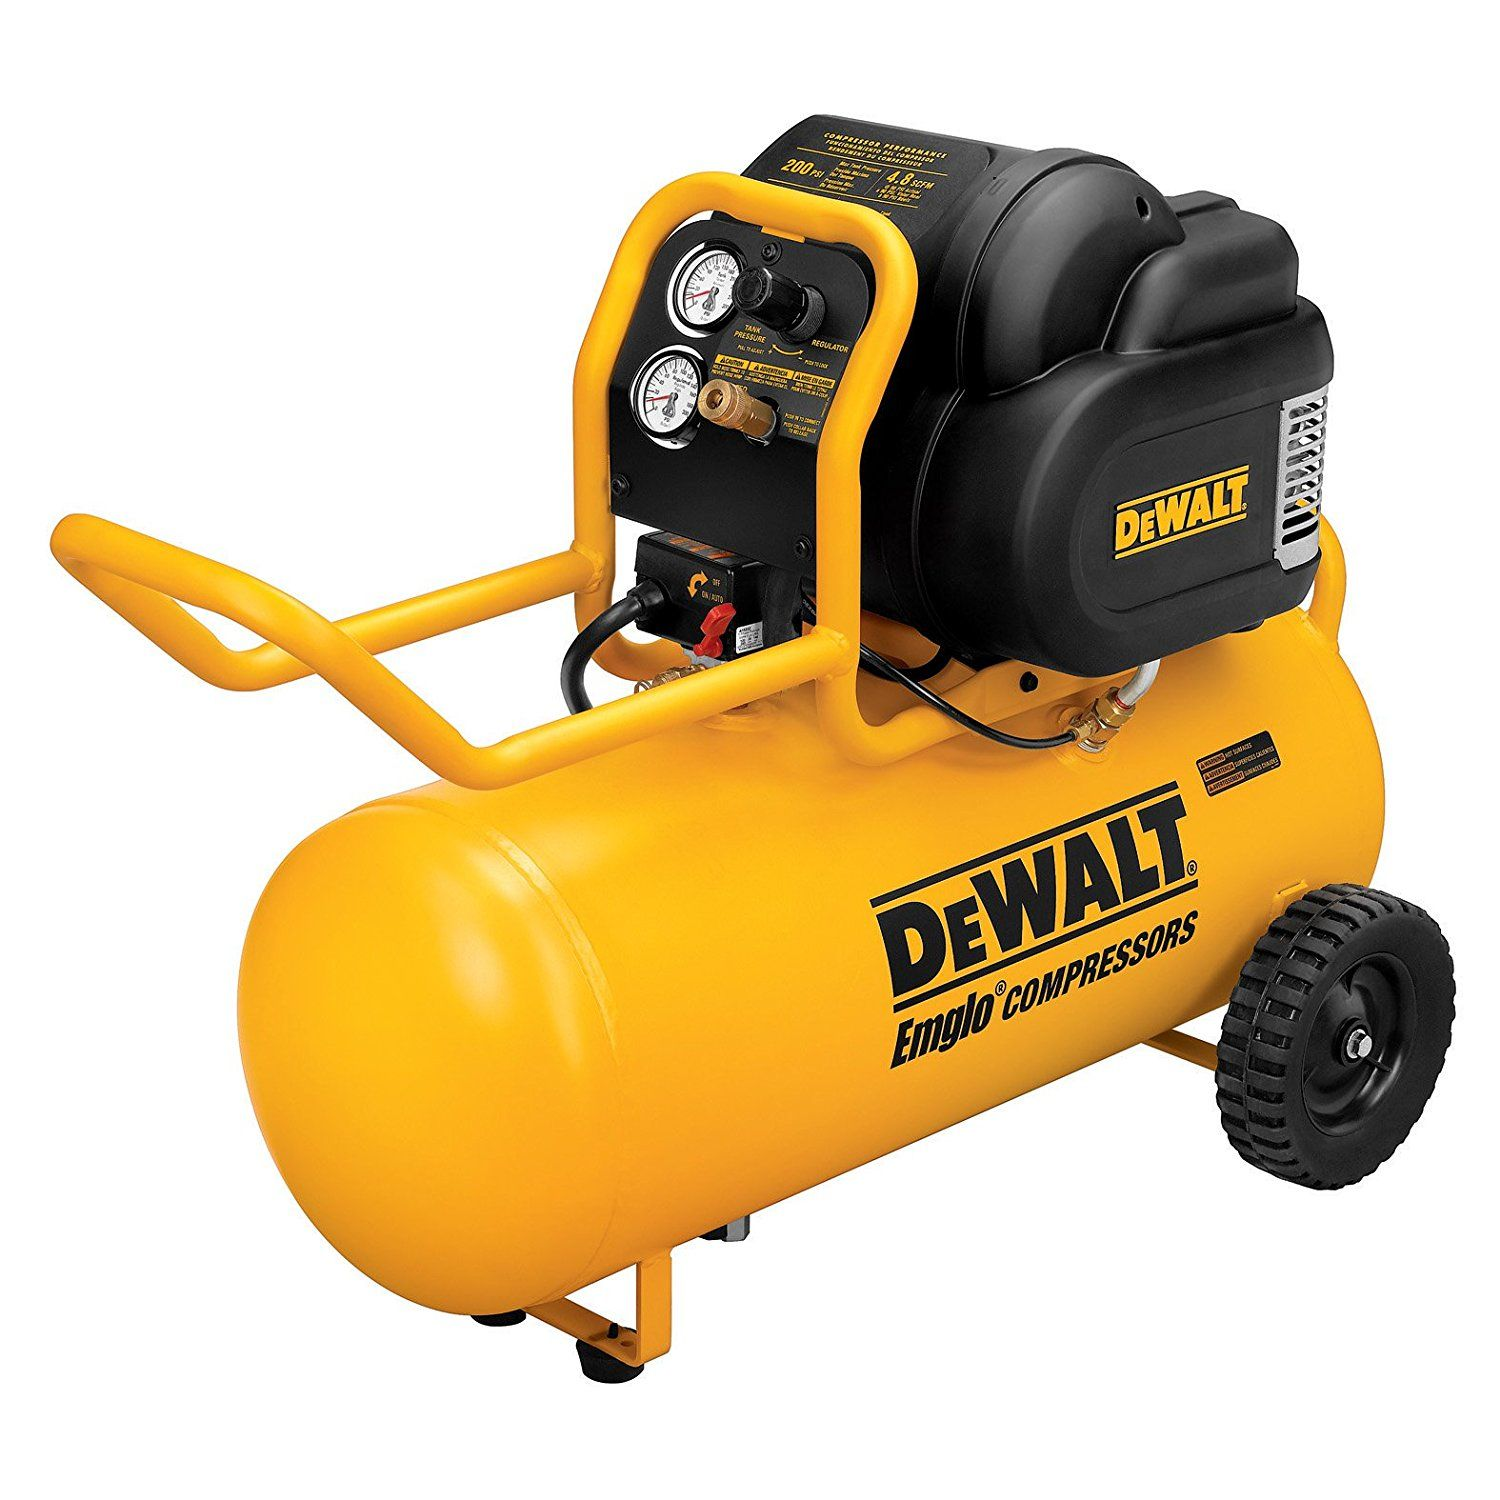 awesome 10 powerful quiet air compressor reviews level up your